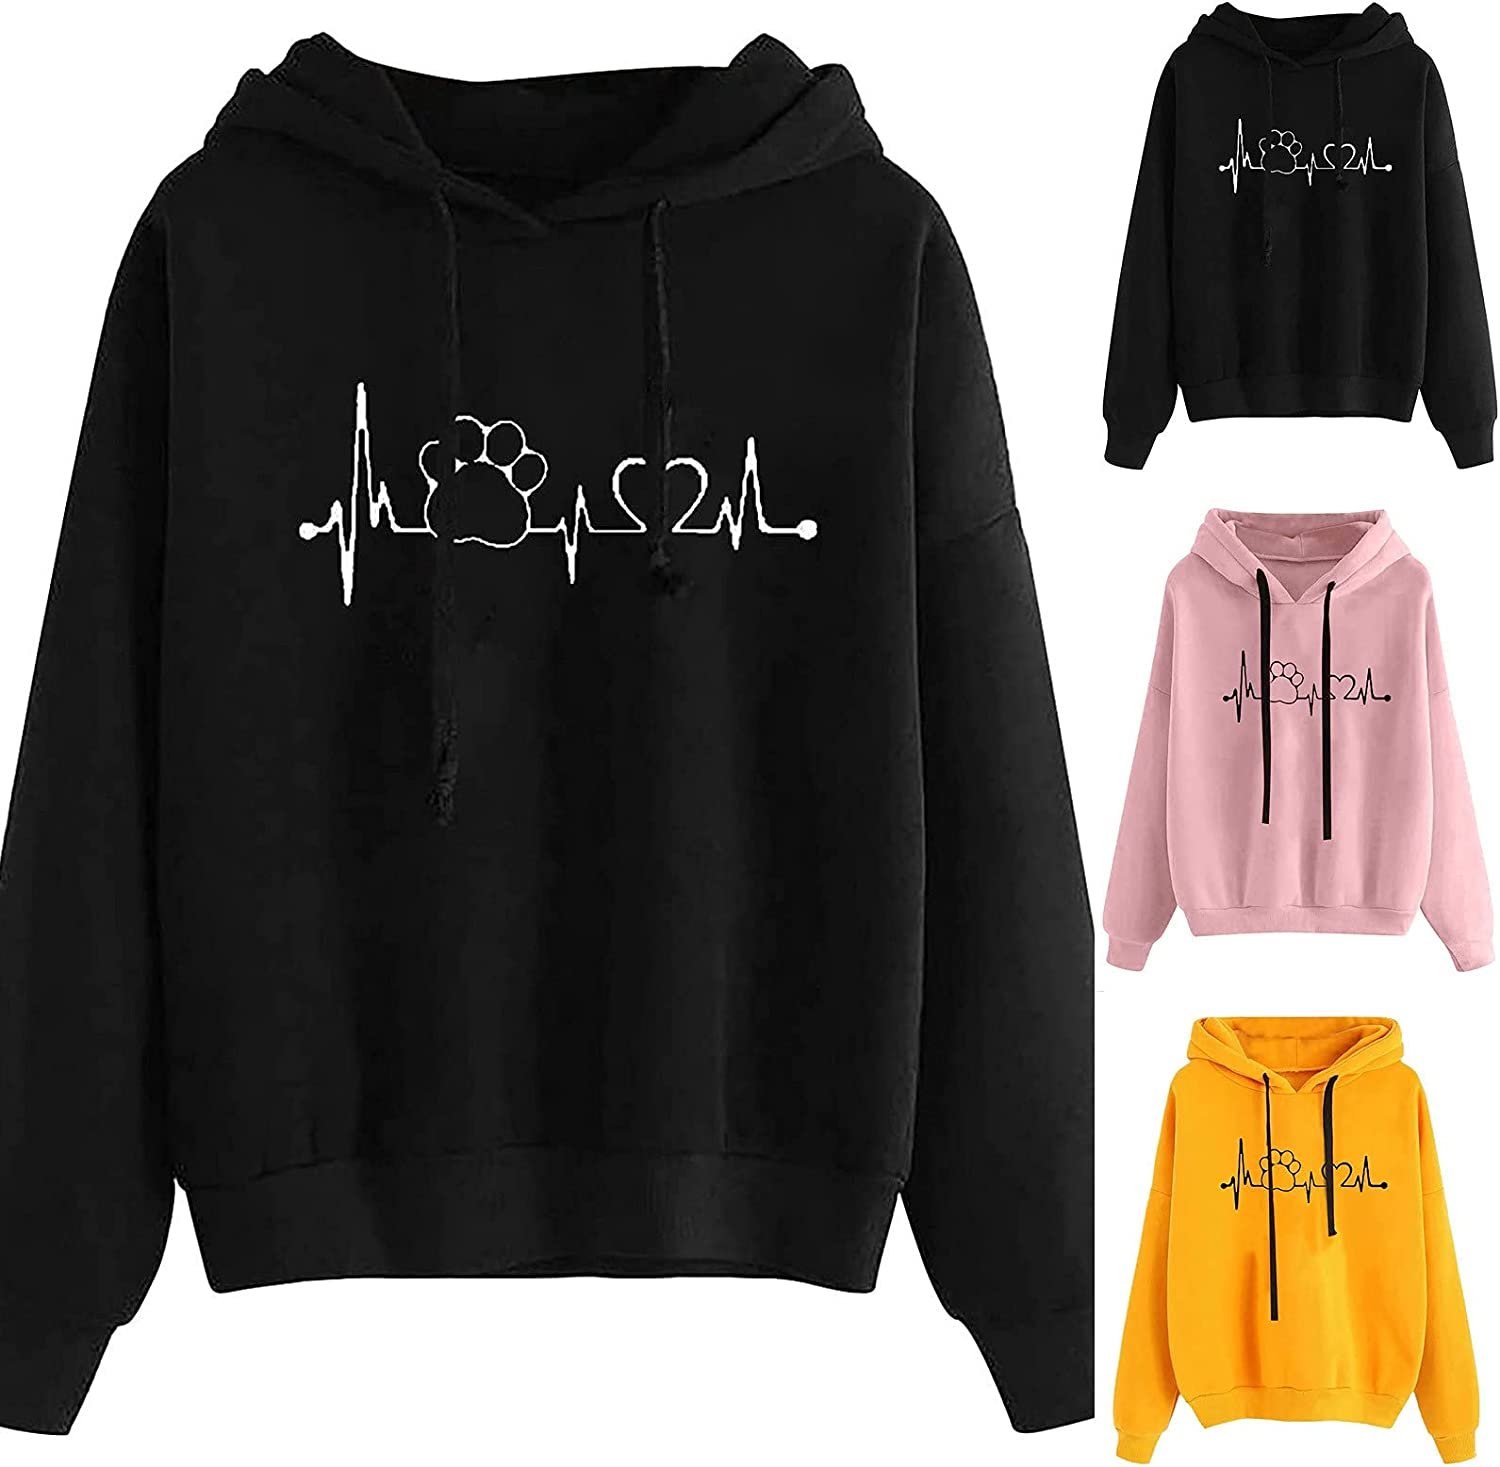 Women's Hoodie Casual Sweatshirts Long Sleeve Shirts Oversized Tunic Tops Cute Crew Neck Relaxed Fit Pullover Shirts